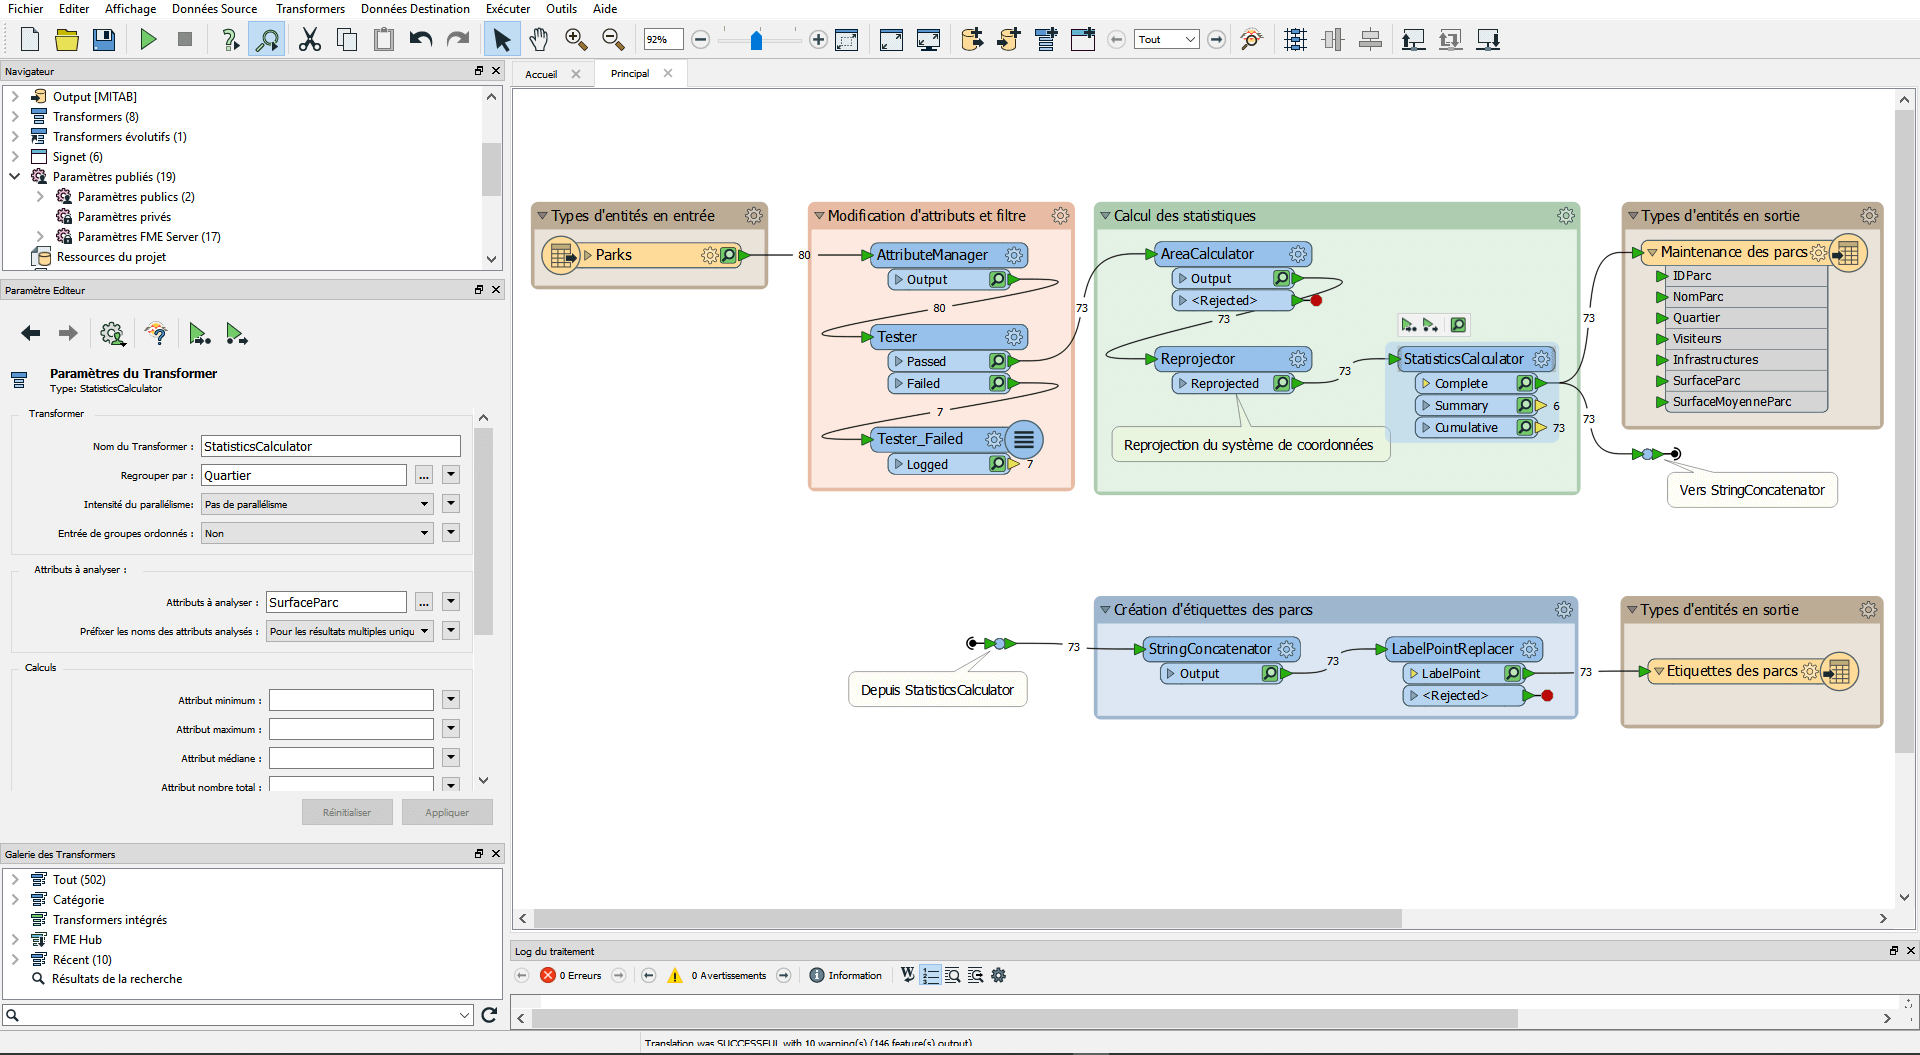 Interface de FME Workbench